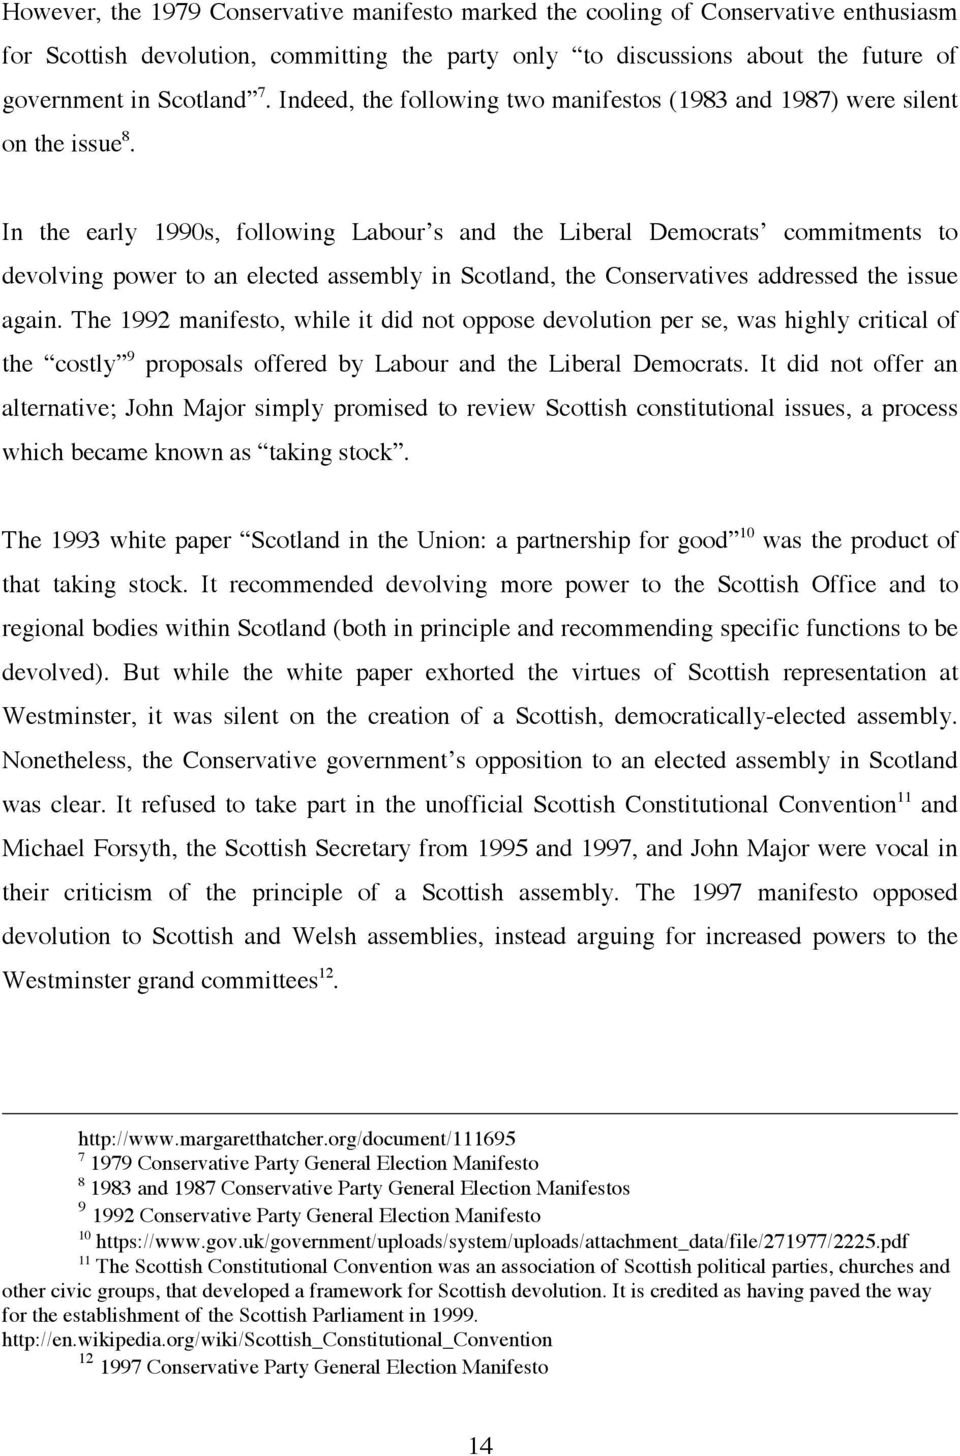 In the early 1990s, following Labour s and the Liberal Democrats commitments to devolving power to an elected assembly in Scotland, the Conservatives addressed the issue again.